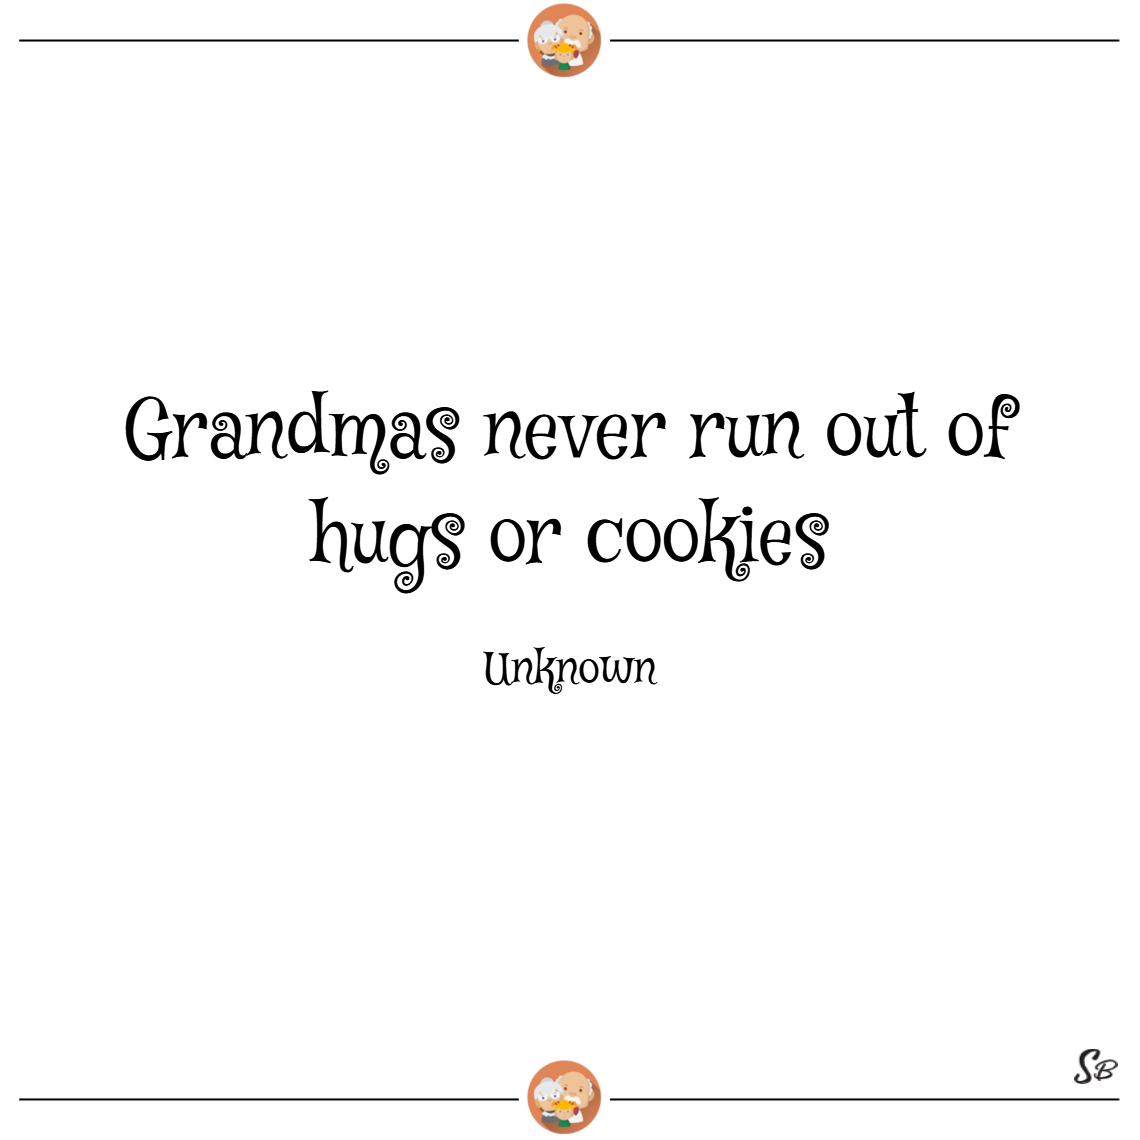 Grandmas never run out of hugs or cookies. – unknown